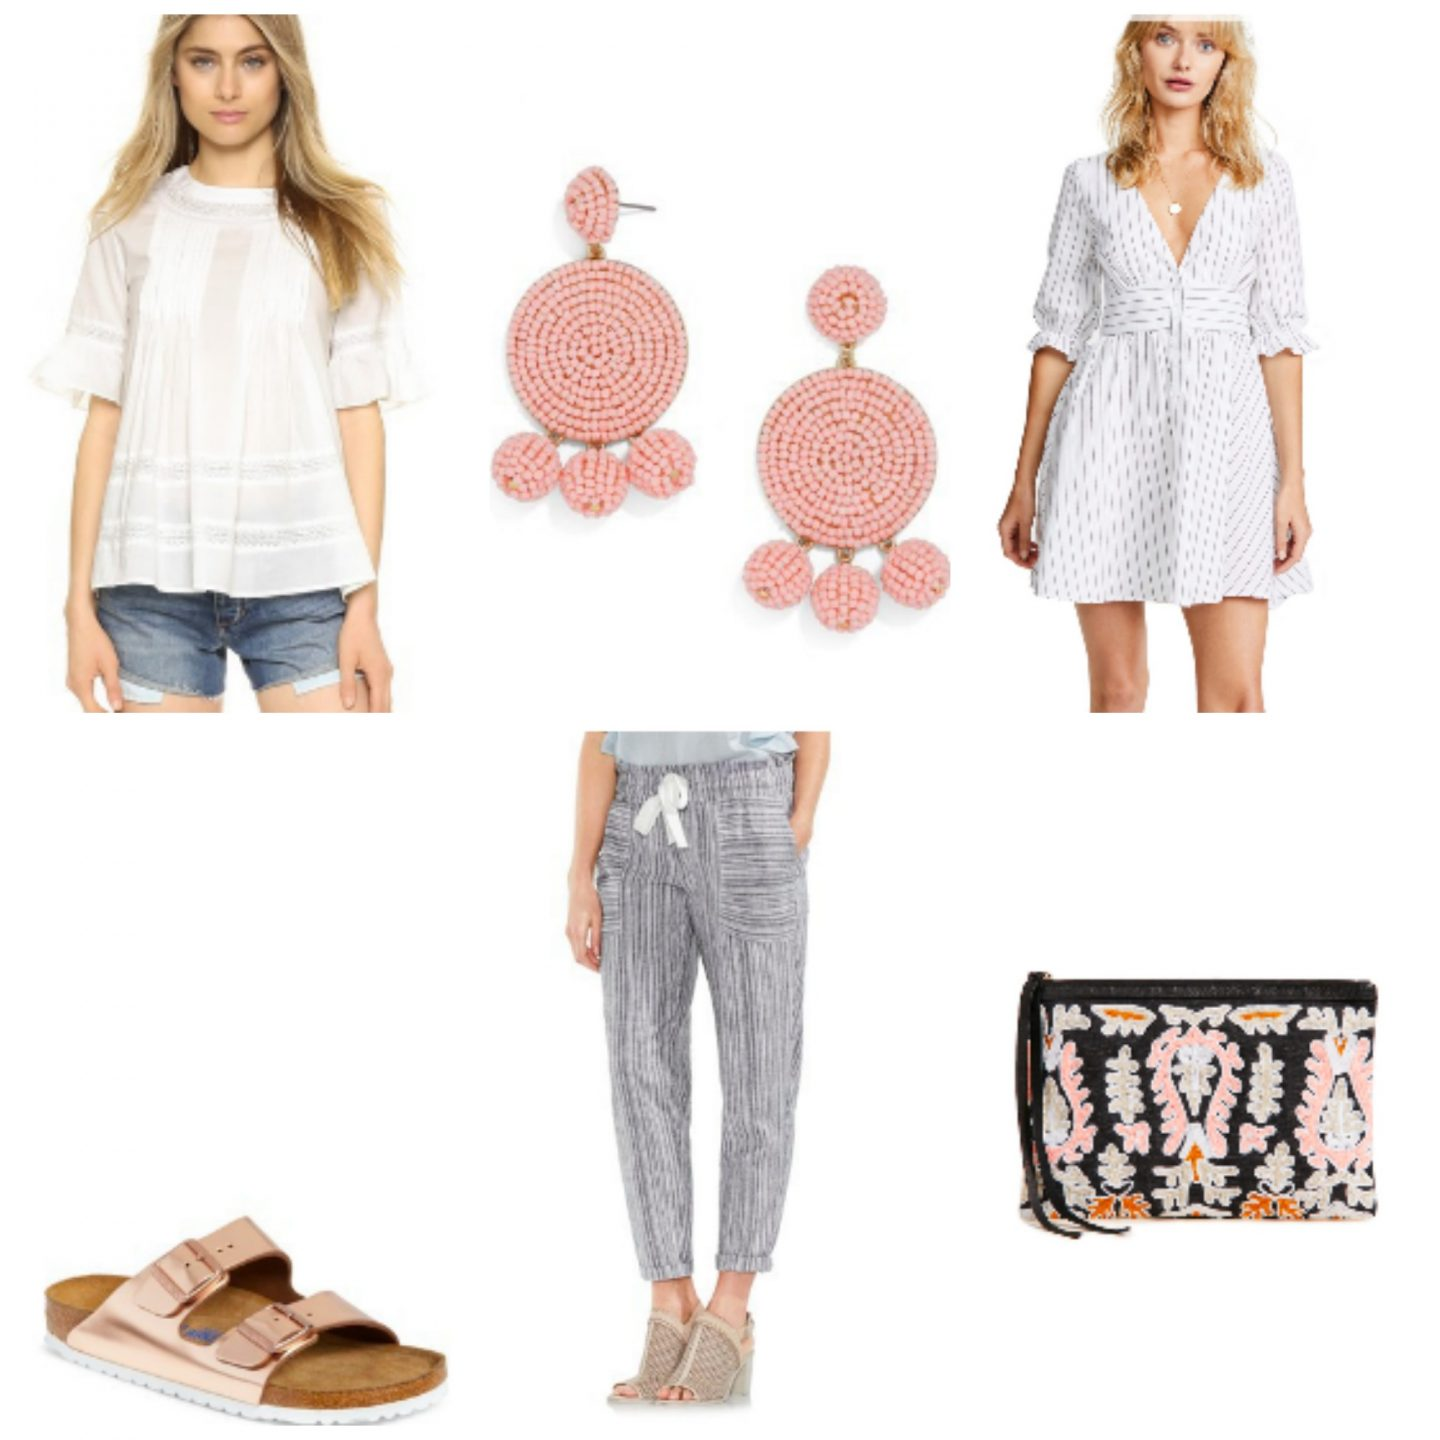 Tuesday's Cravings: Pastels for Spring